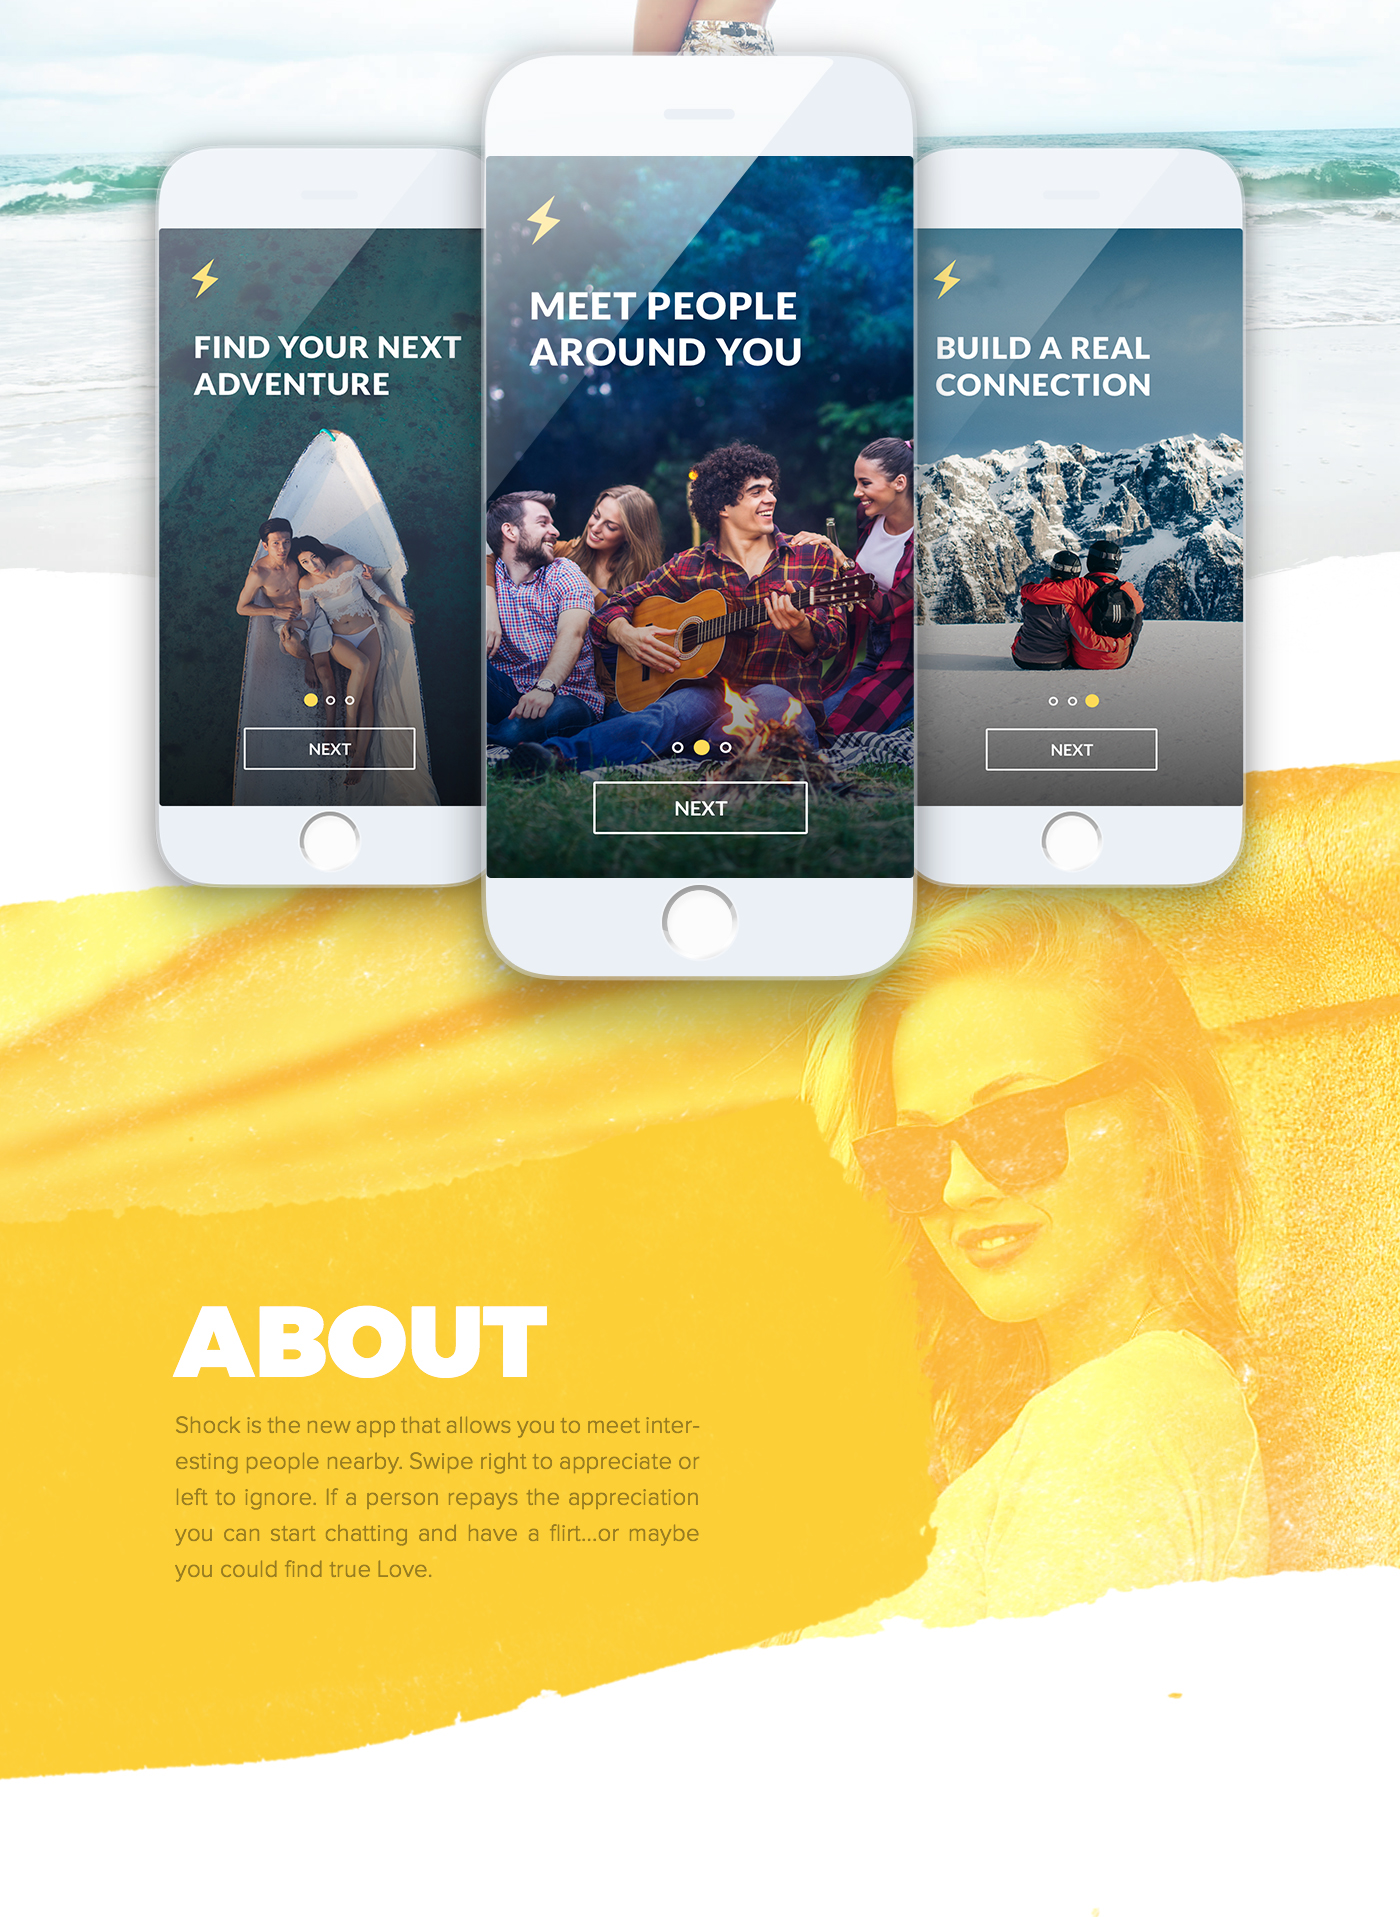 Shock - iOS & Android dating app on Behance